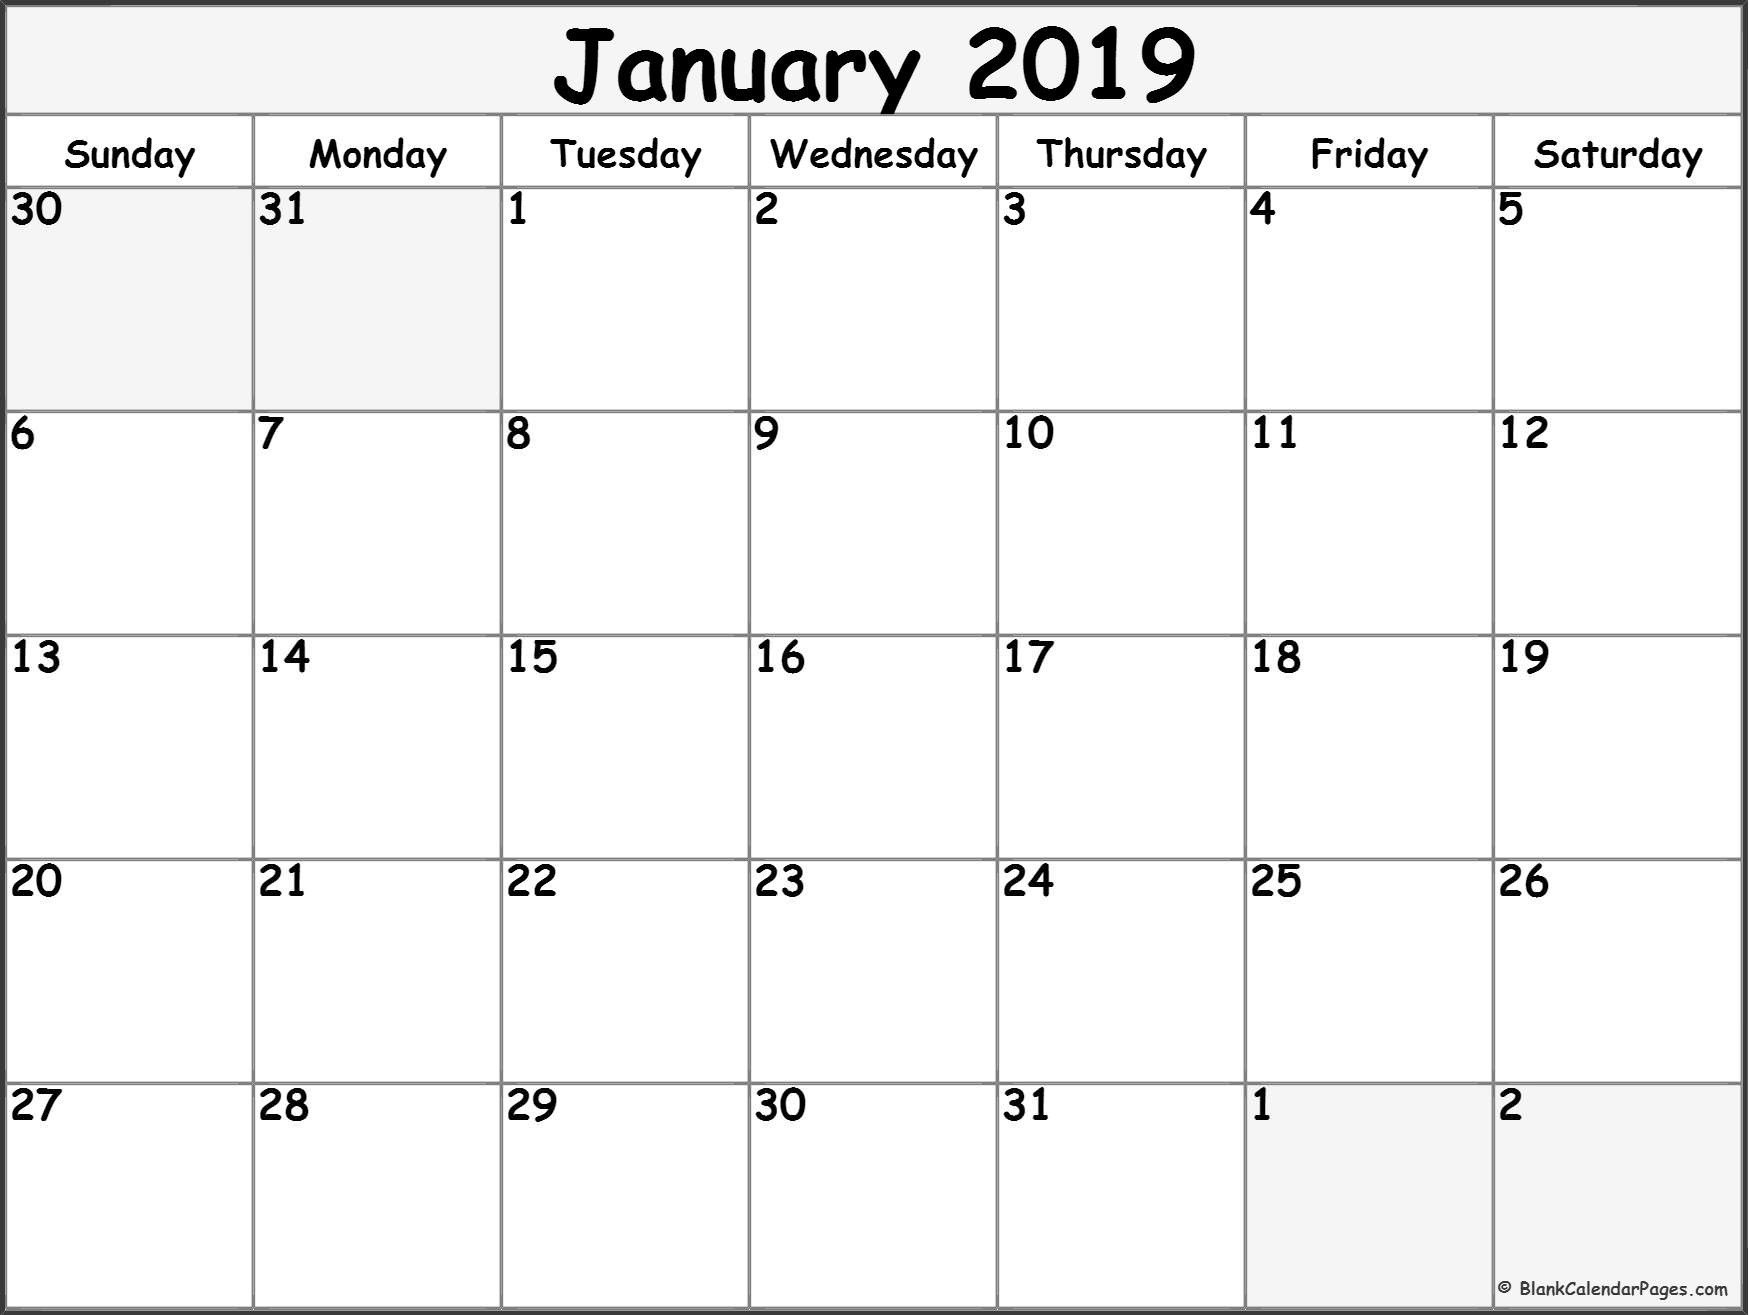 Free Printable Blank Calendars To Fill In – Calendar Printable Calendar That You Can Fill In Color In The Blocks